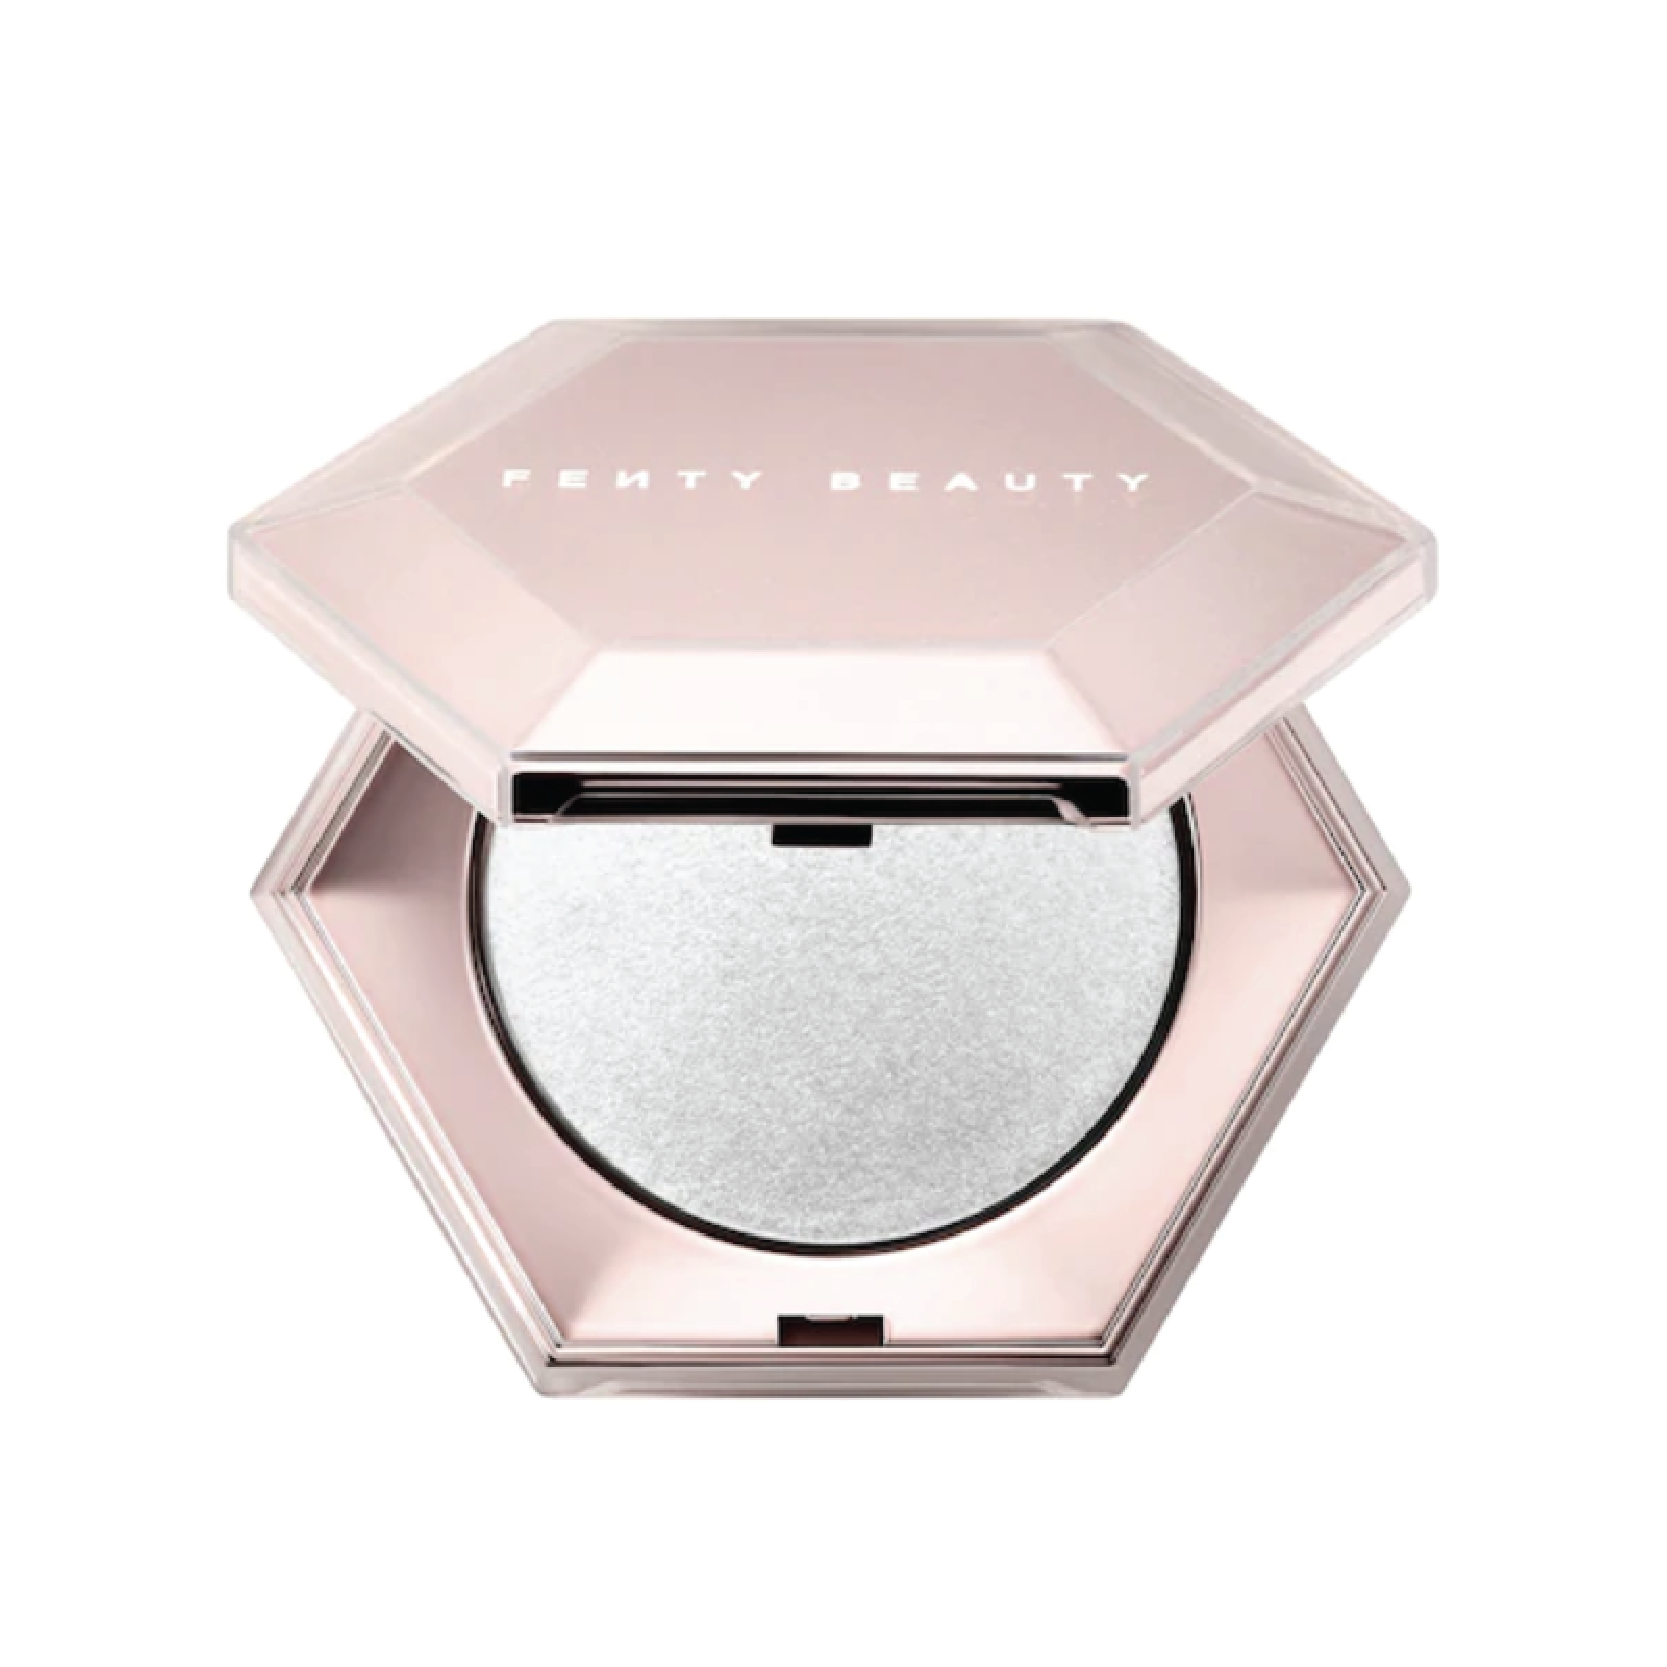 Fenty Beauty Diamond Bomb All-Over Diamond Veil - $38 at SephoraThis all-over face and body shimmer has the absolute most beautiful silver glow. As someone who loves gold, even I couldn't resist this.